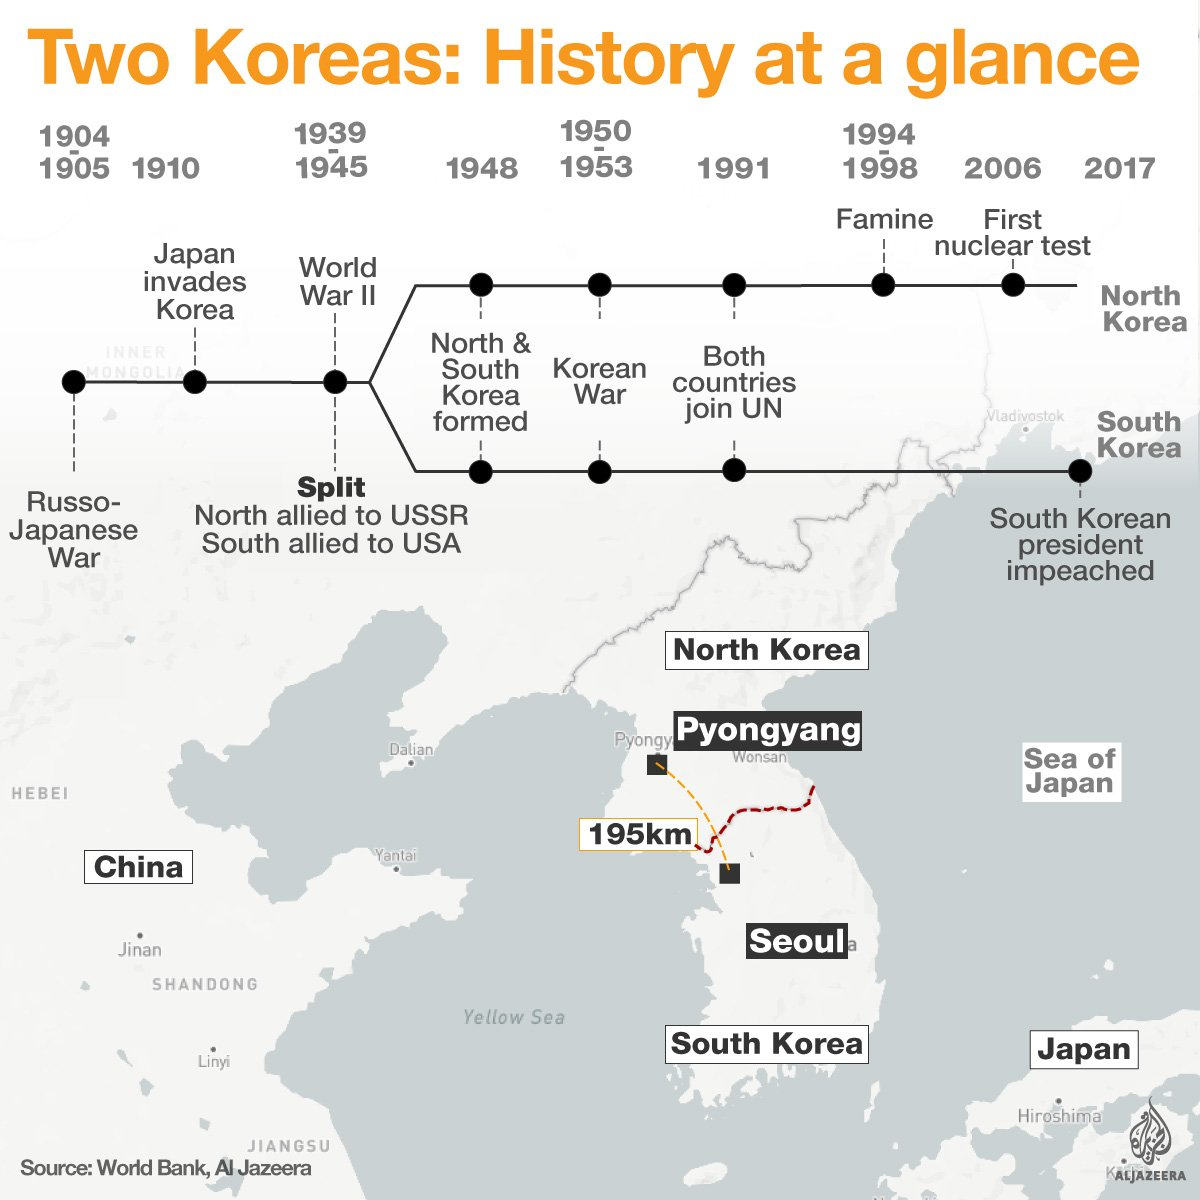 The history of the two Koreas at a glance